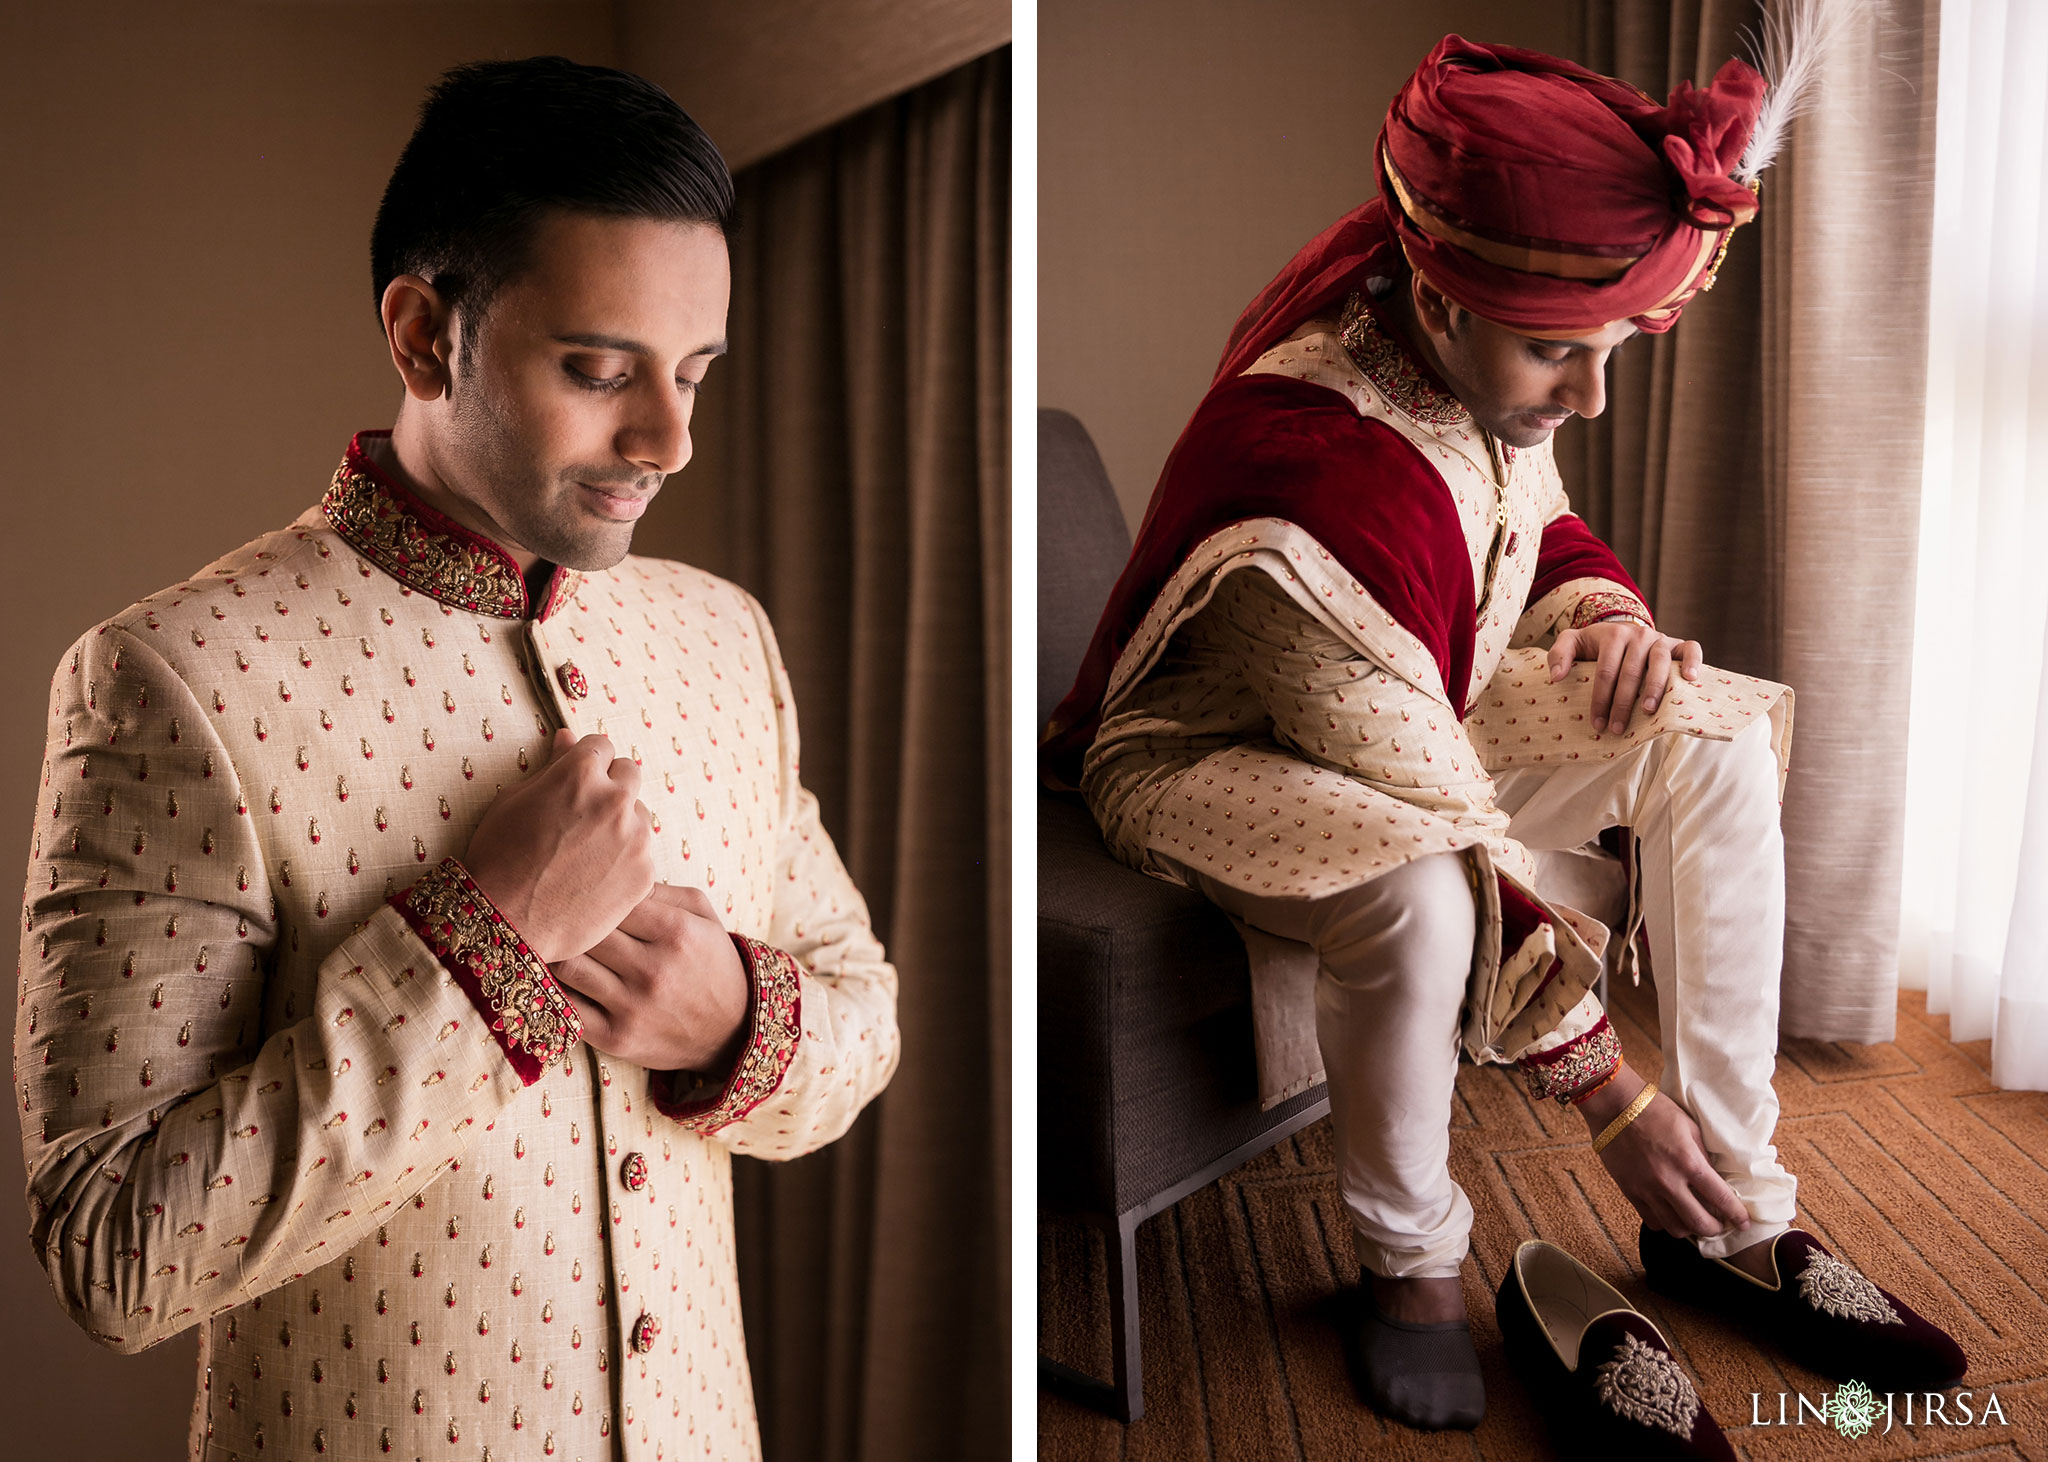 13 hotel irvine indian groom wedding photography